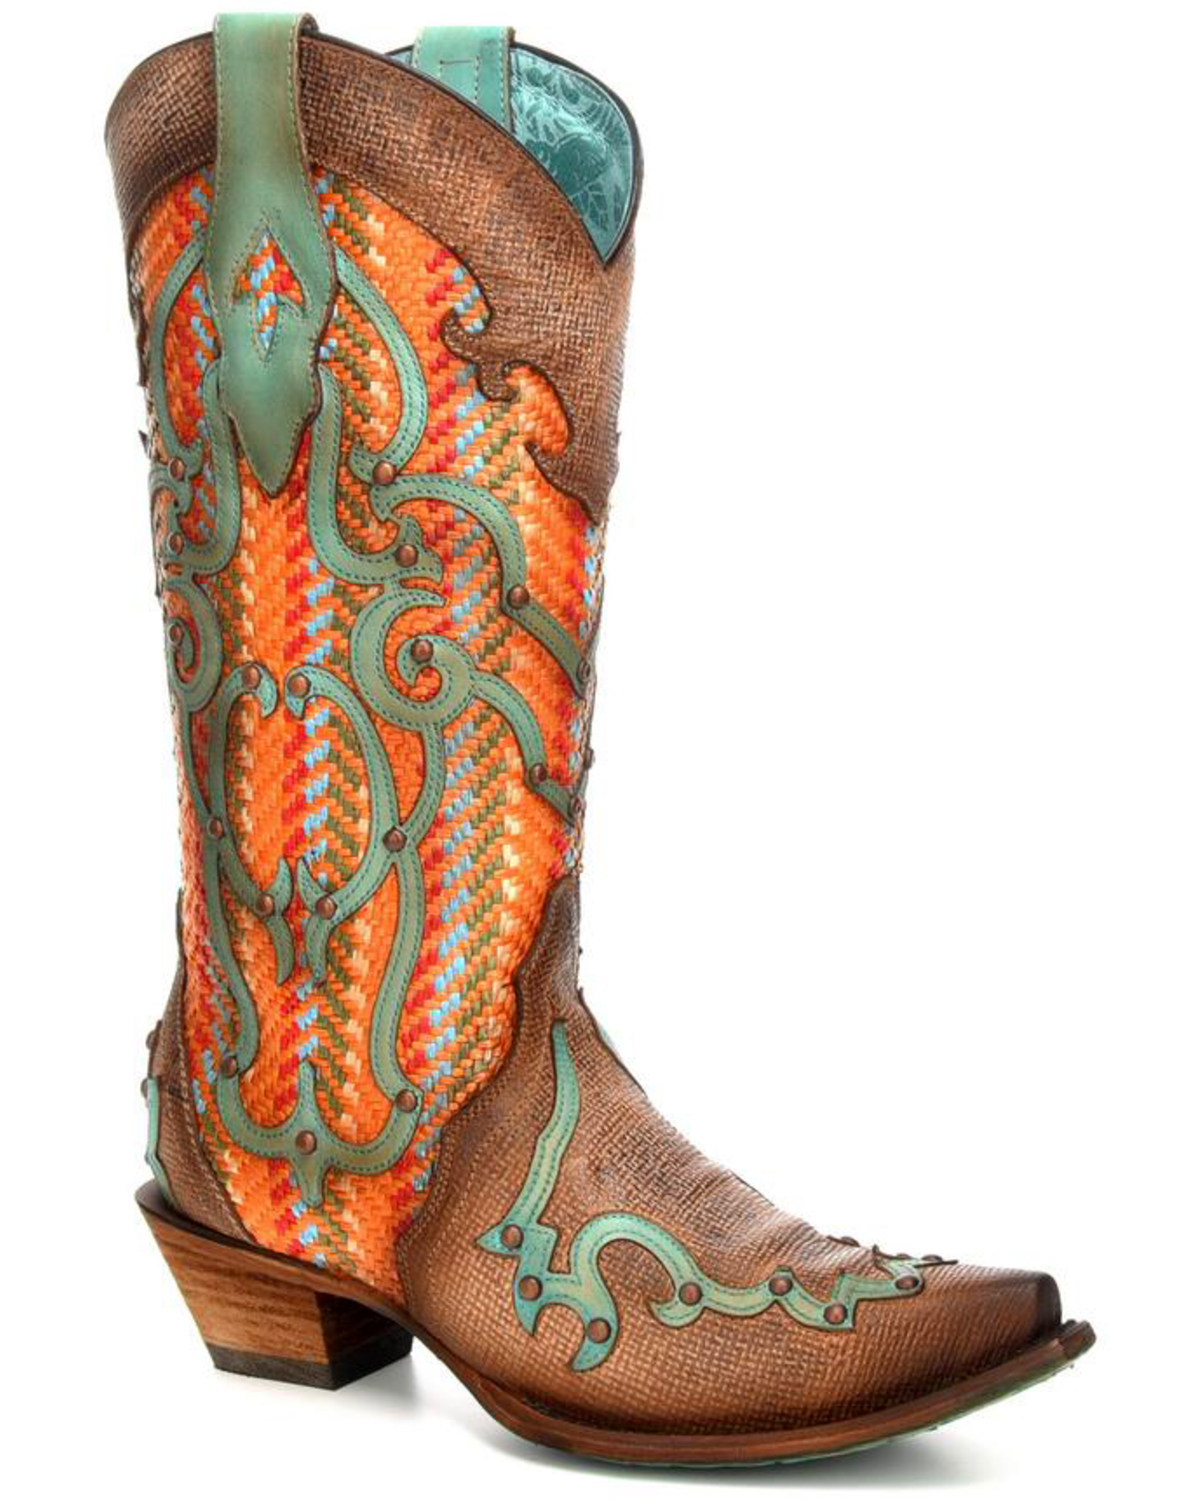 Corral Women's Multicolored Turquoise